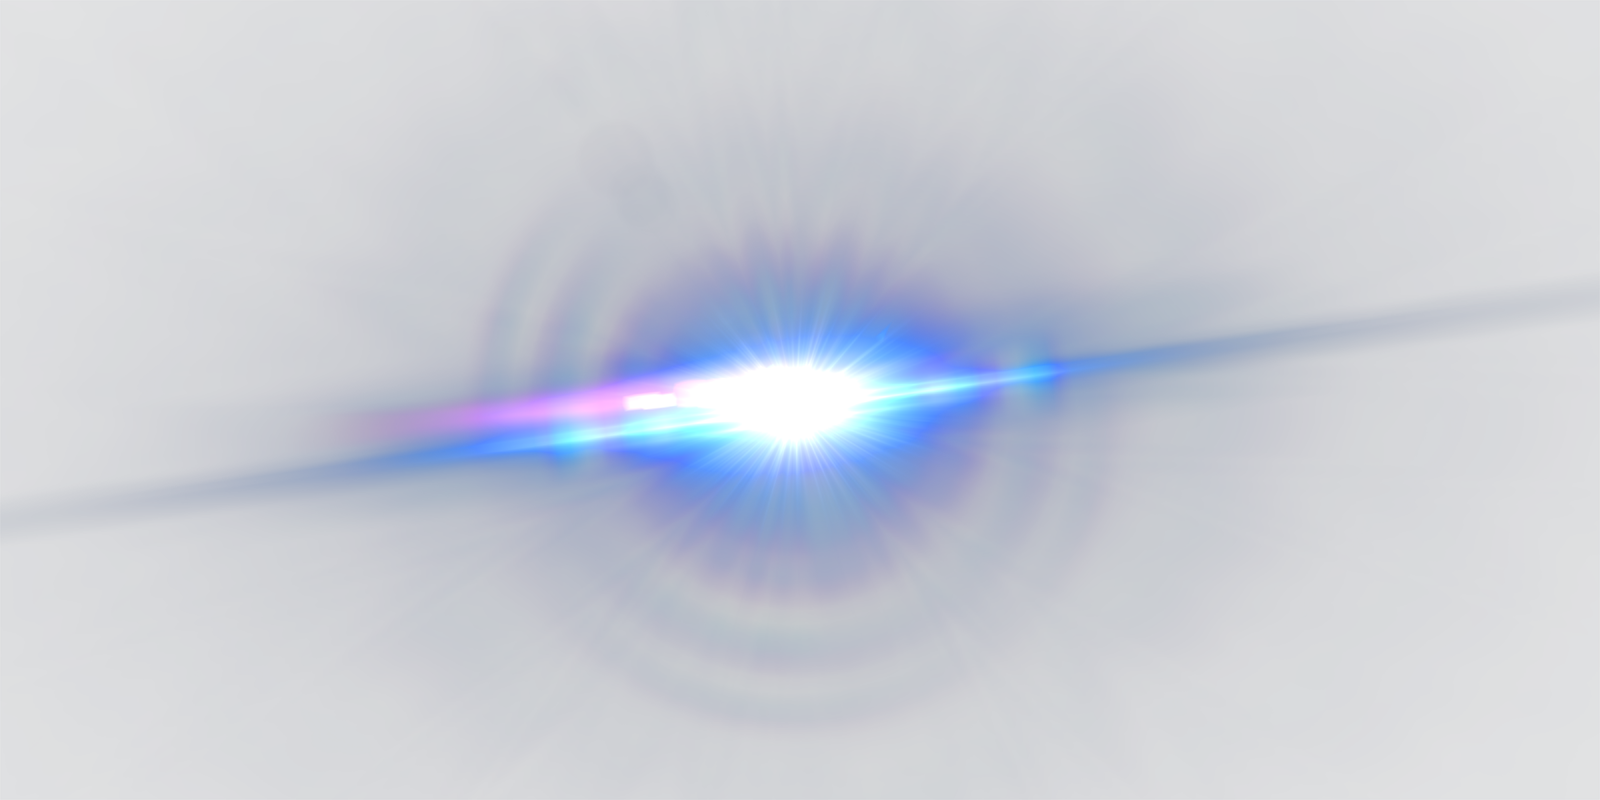 Blue light png. Bright rhythm of the